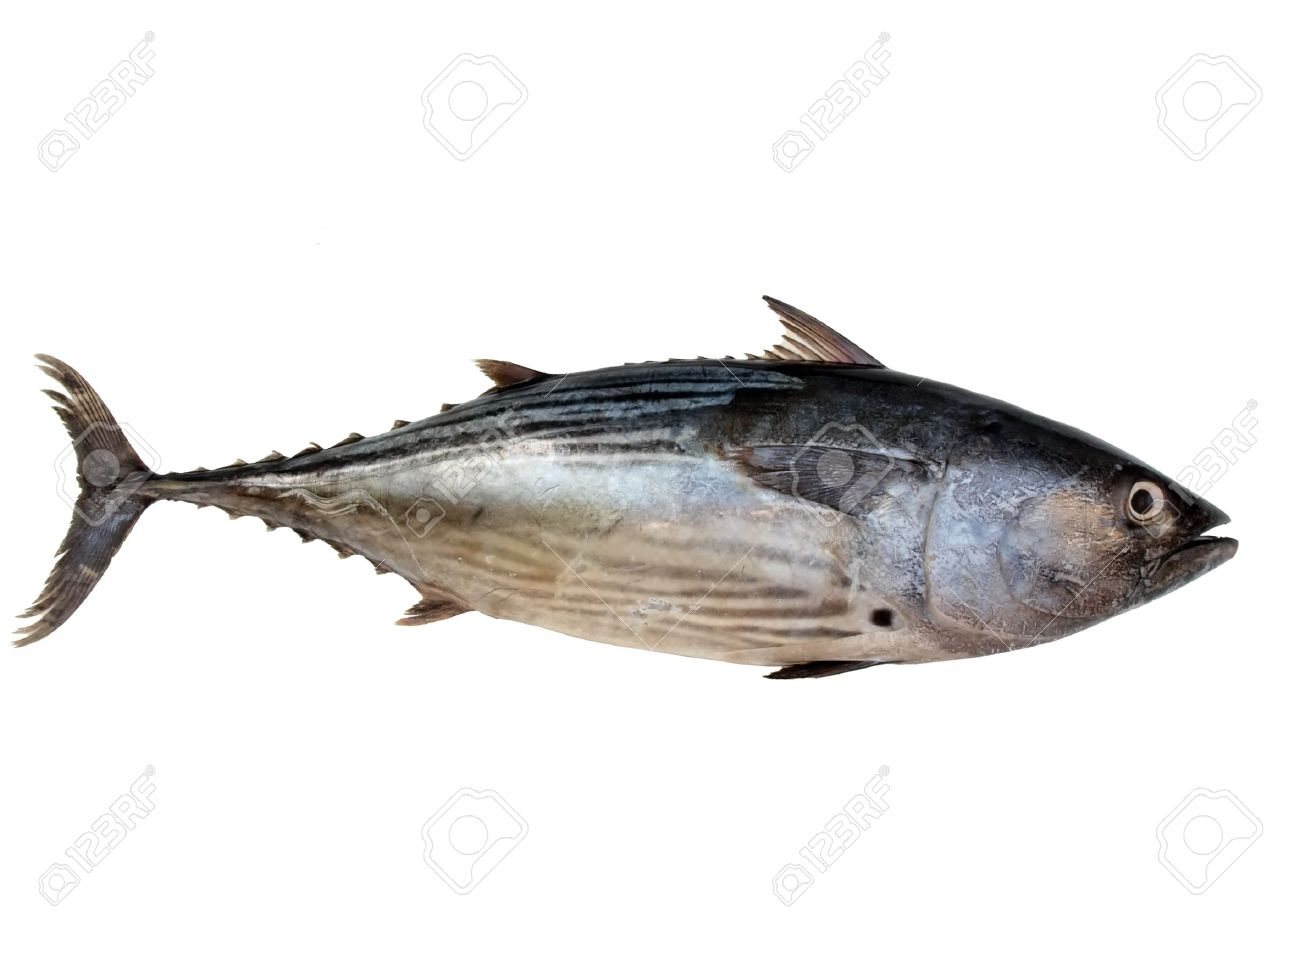 hight resolution of a tuna fish isolated on a white background stock photo 7515815